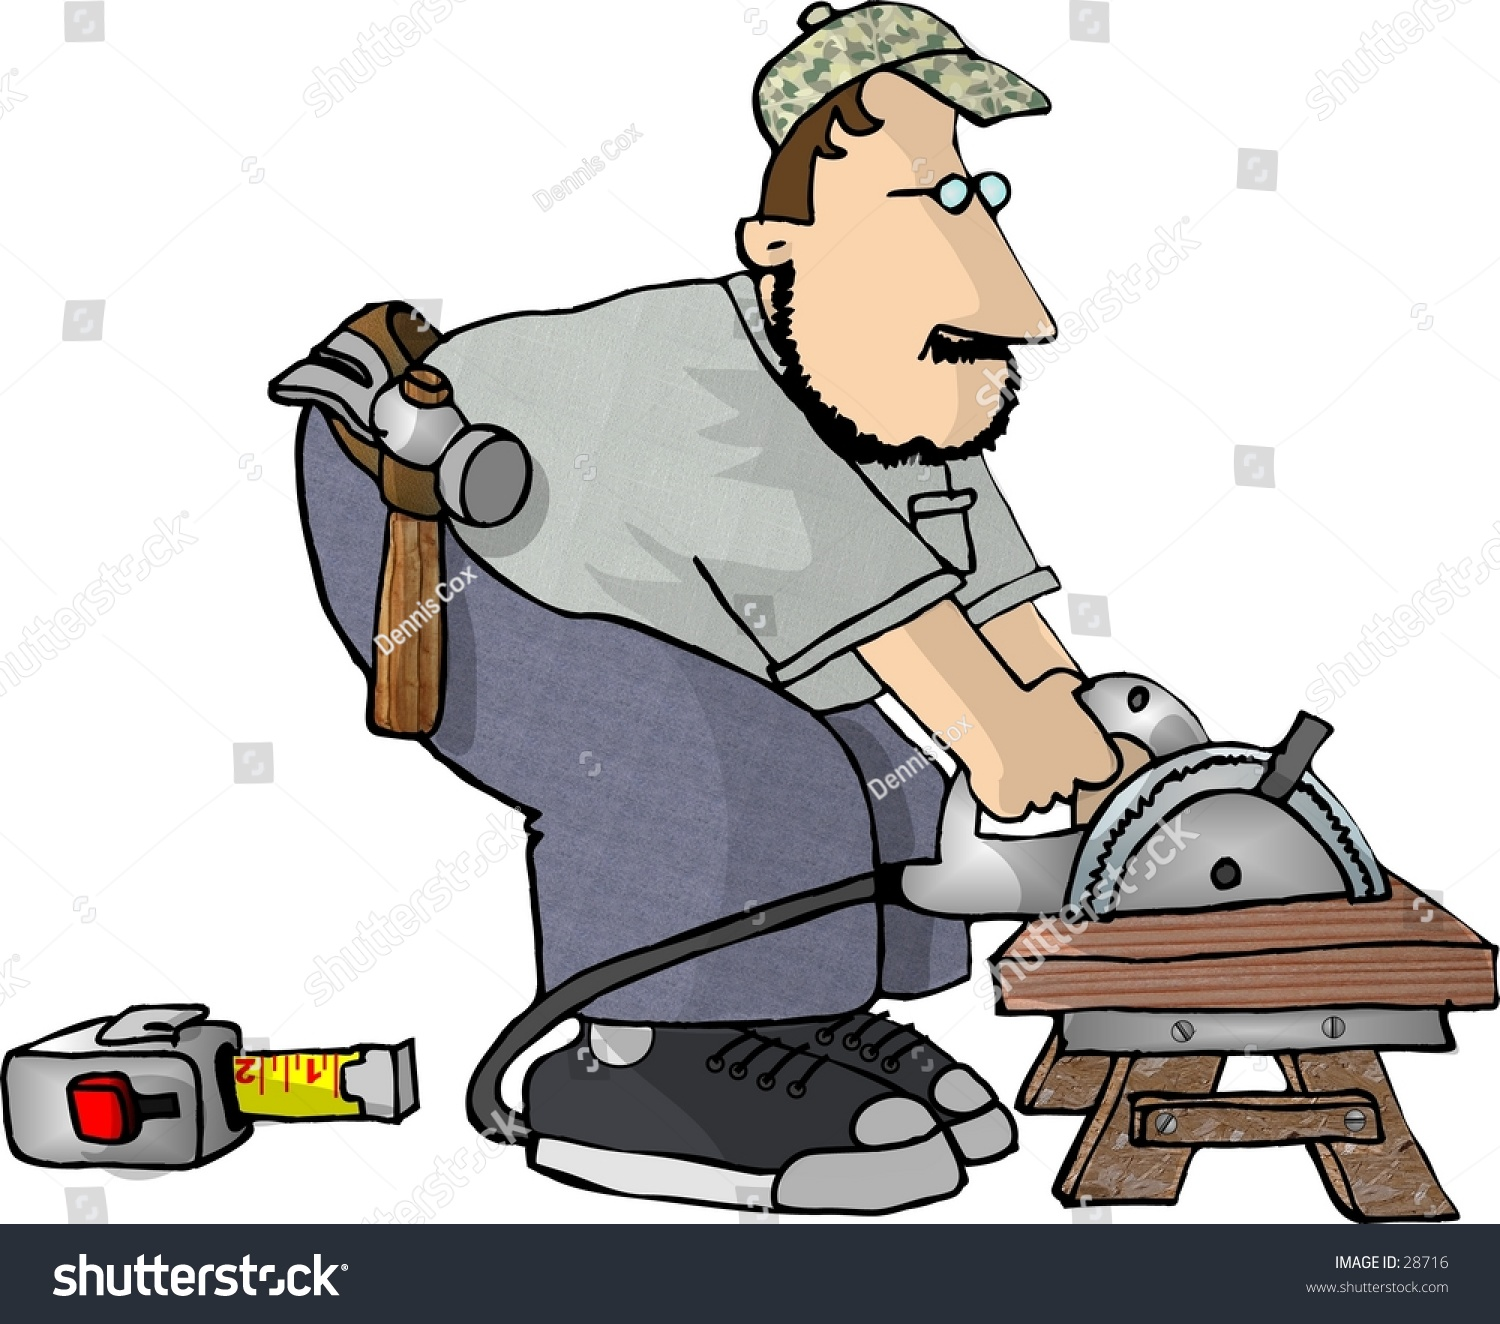 hight resolution of clipart illustration of a man cutting wood with a power saw